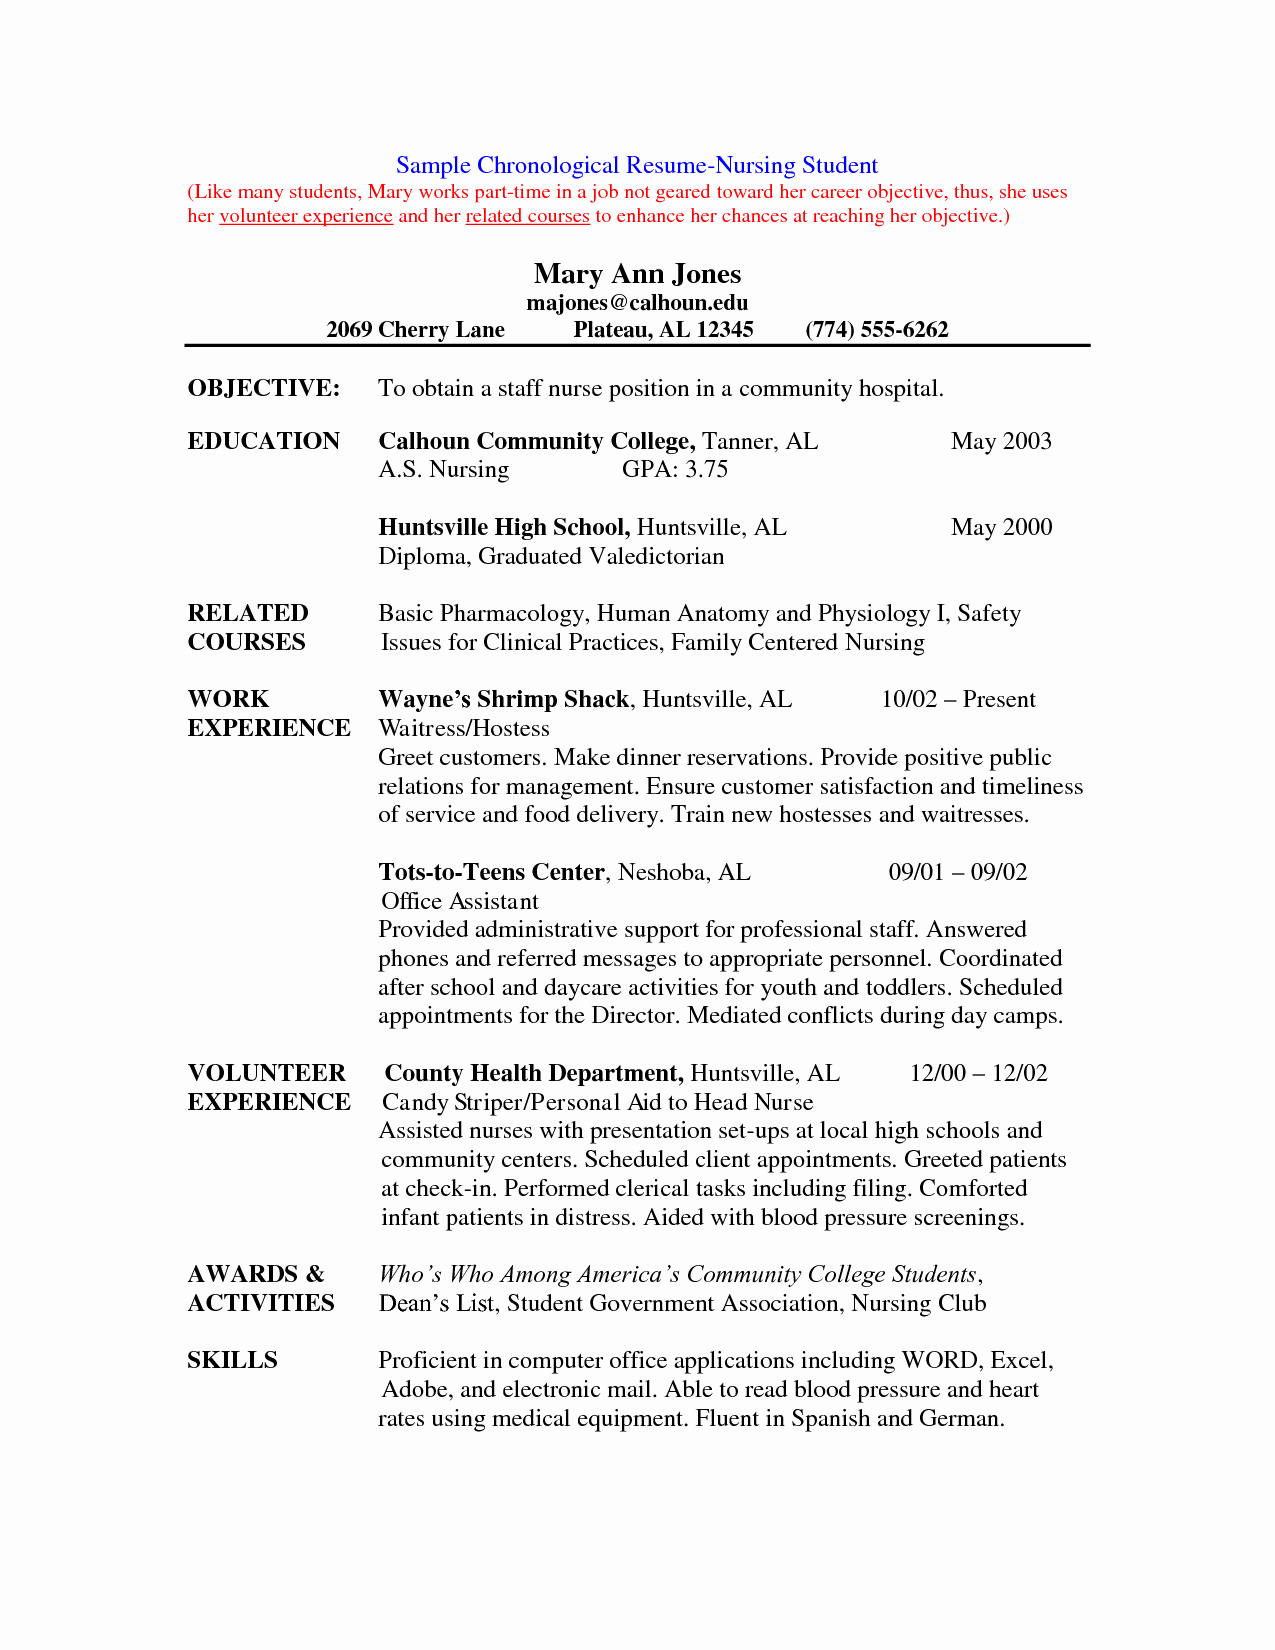 Nursing Student Resume Templates Luxury Cover Letters for Nursing Job Application Pdf